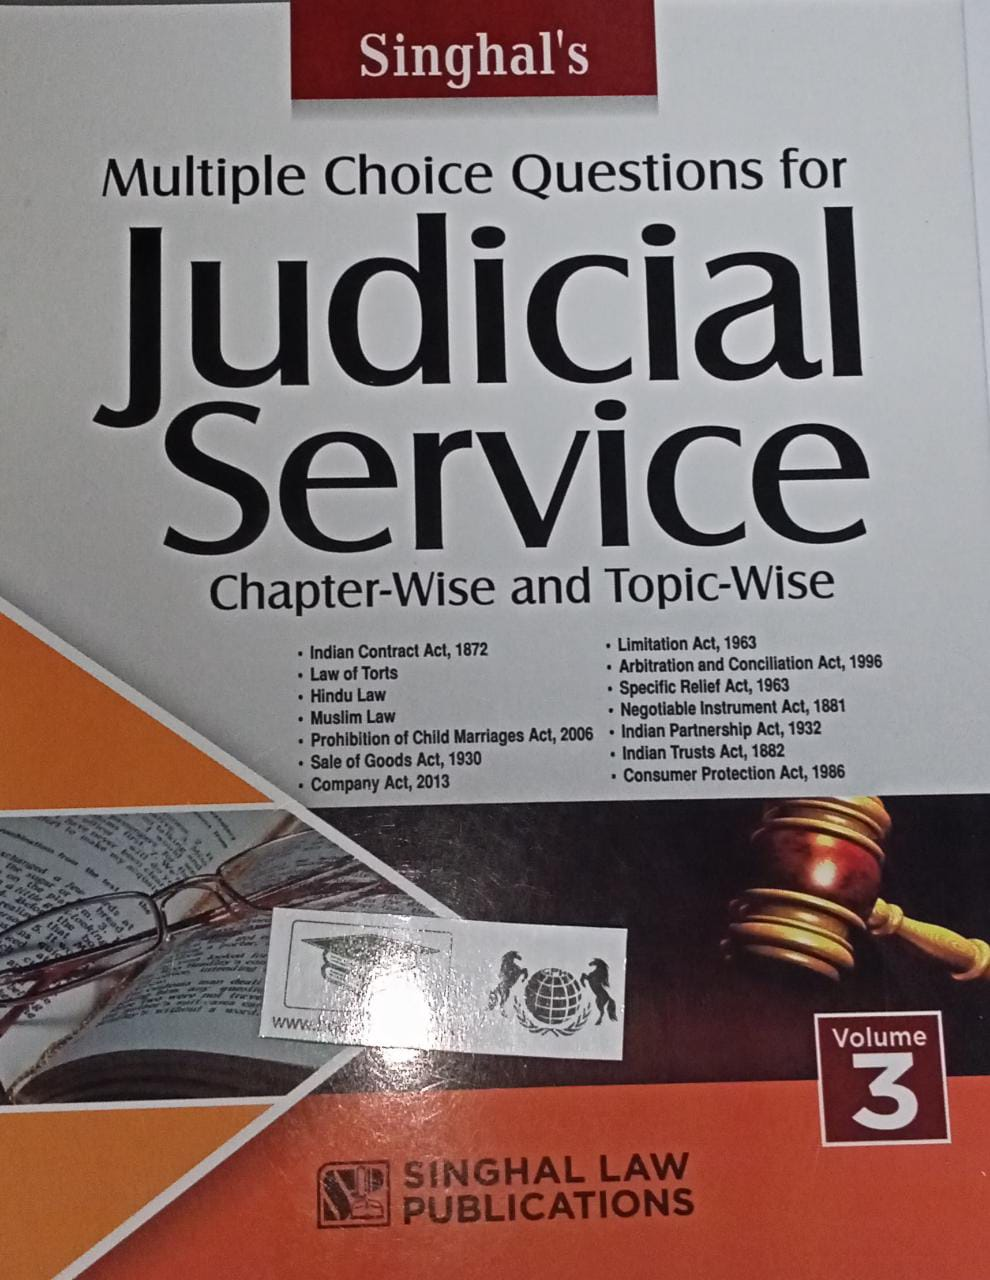 Singhal's Multiple Choice Question for Judicial Service Examination Chapter-wise and Topic wise Volume-3 by Singhal Law Publications